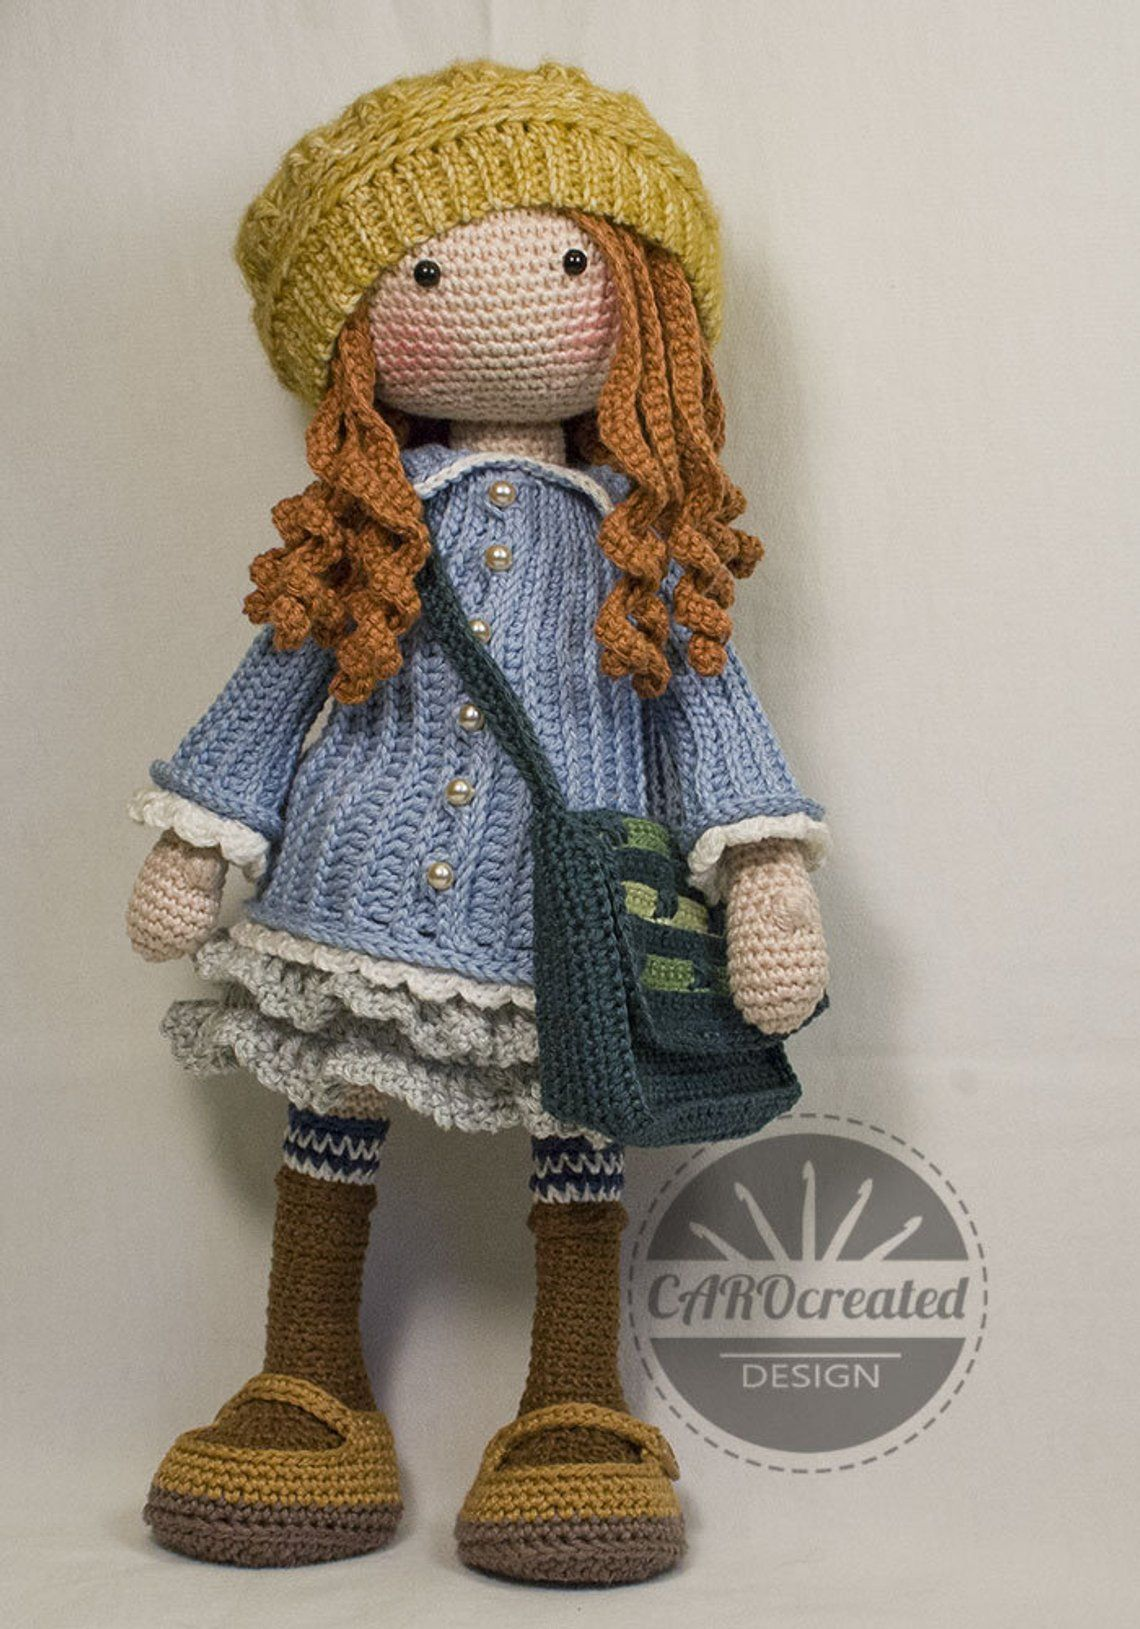 Crochet Pattern for Doll SMILLA, pdf (Deutsch, English, Français, Nederlands, Español, Italiano)